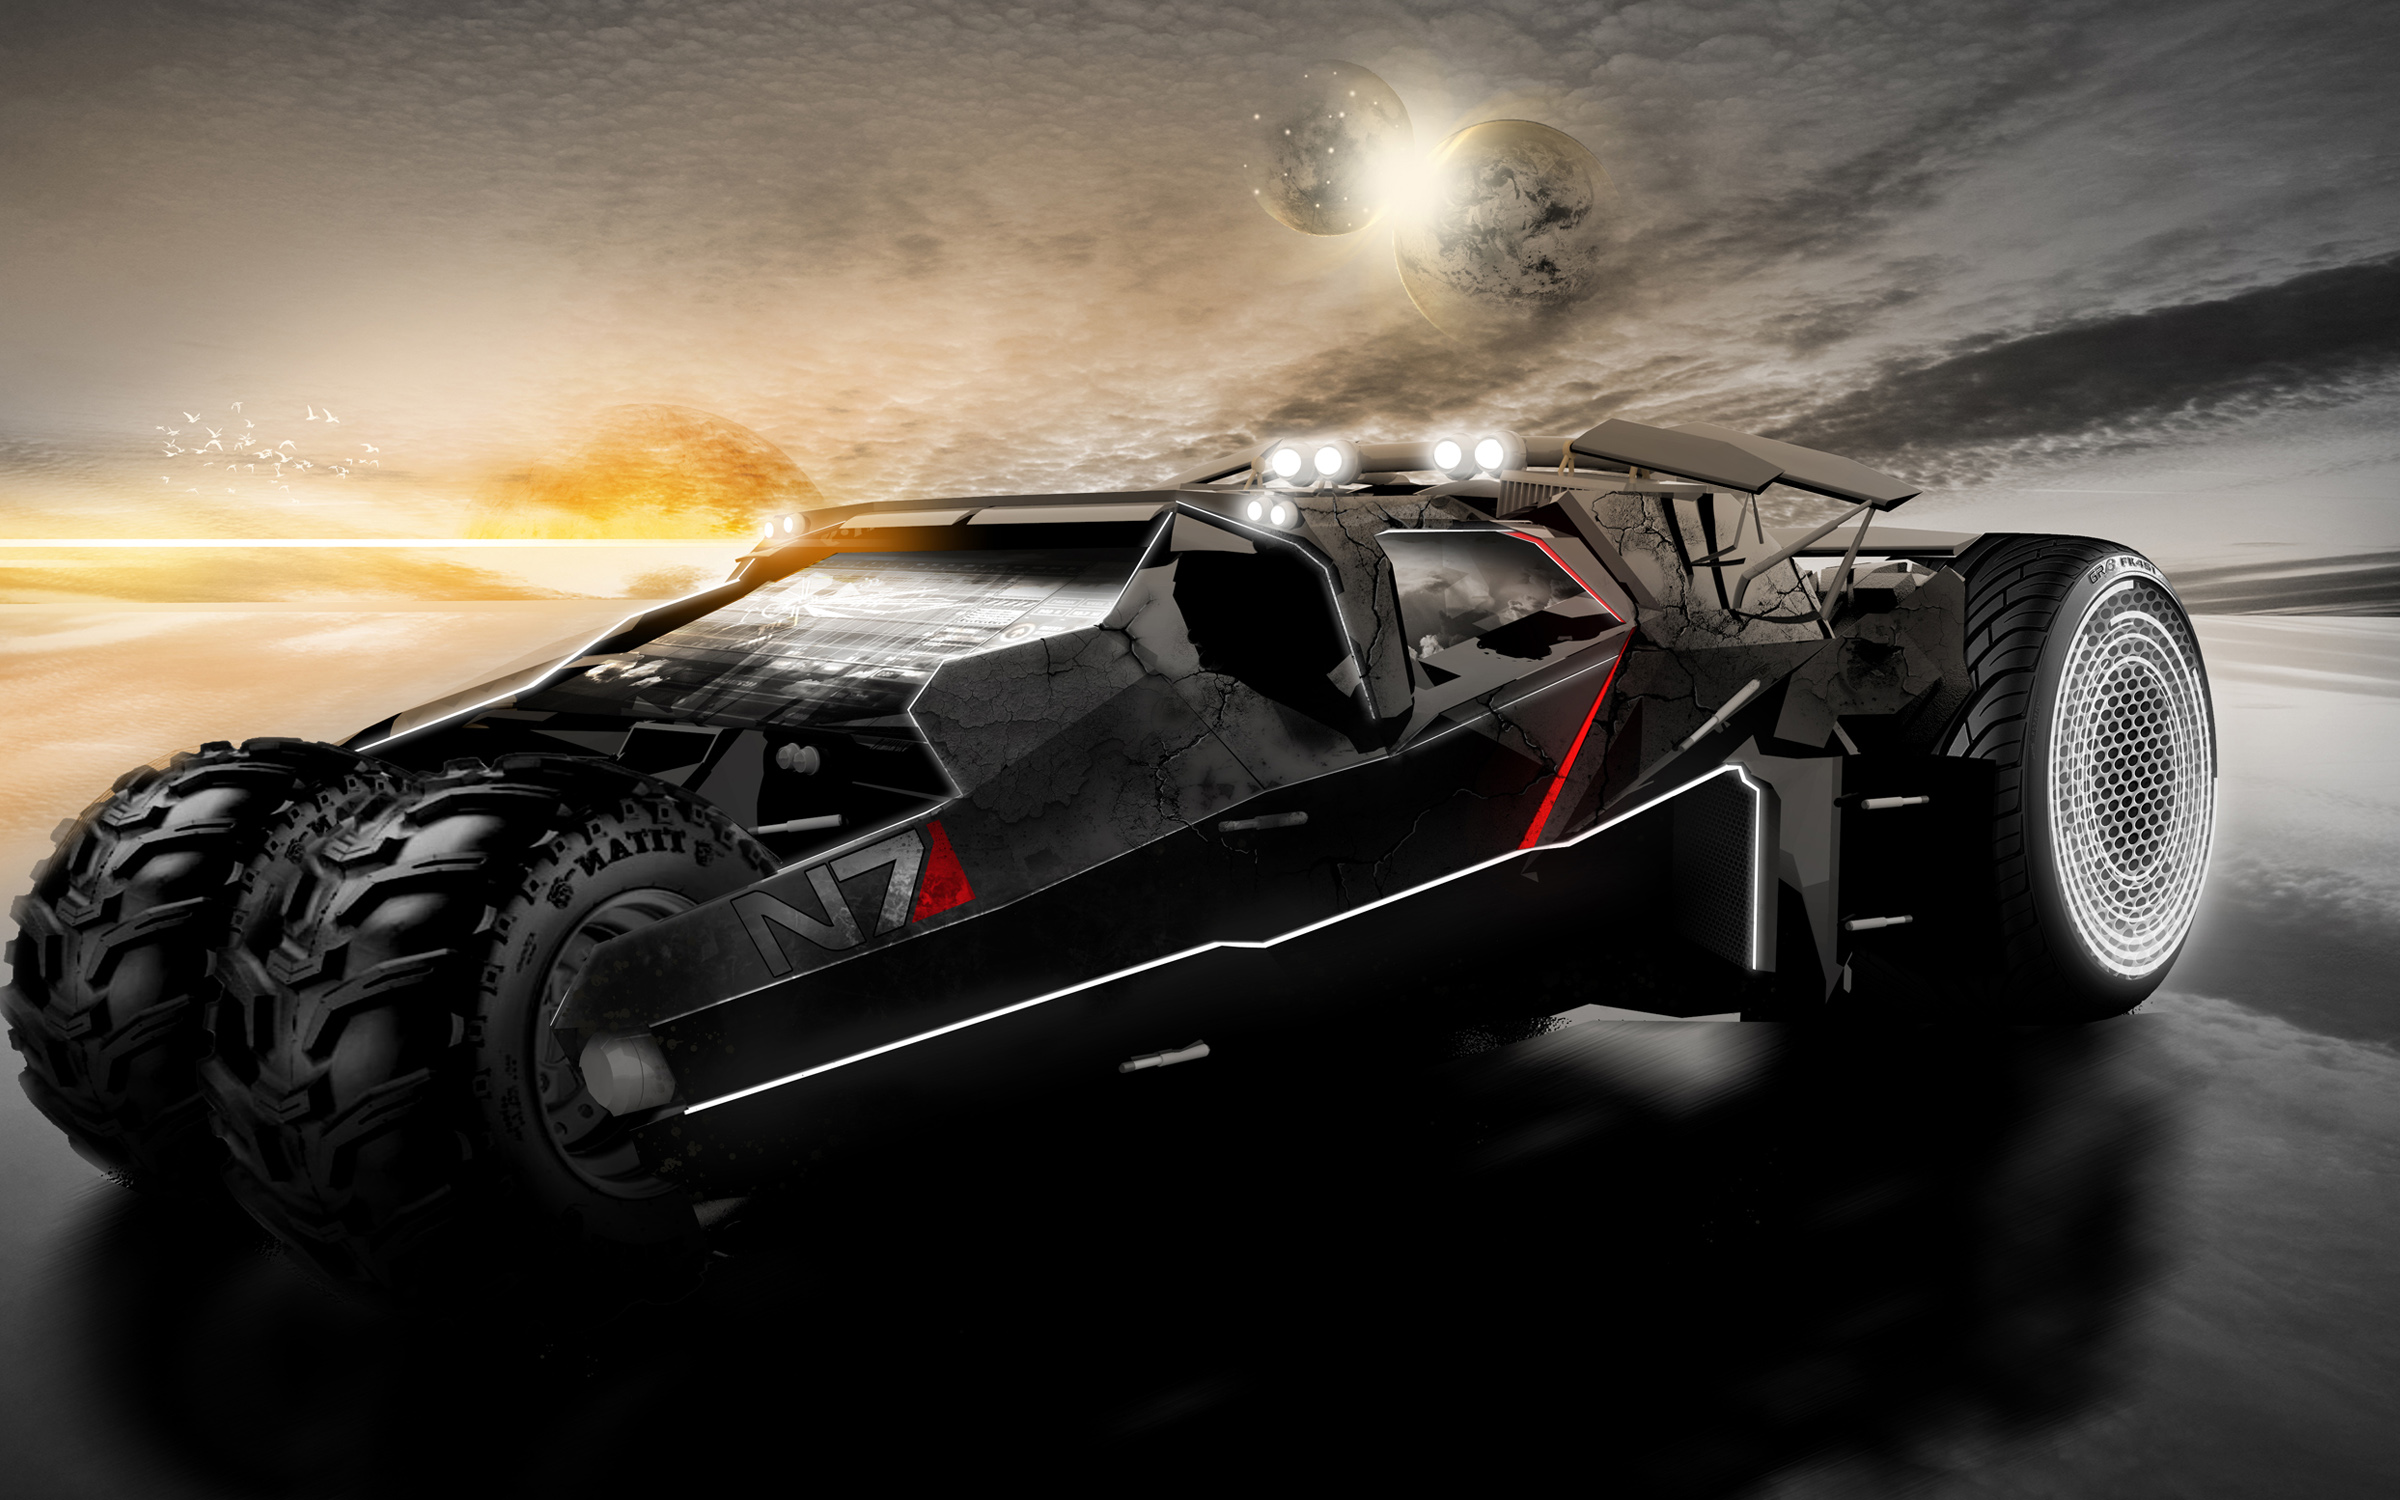 Hd wallpapers of cars - Mass Effect N7 Car Wallpapers Hd Wallpapers